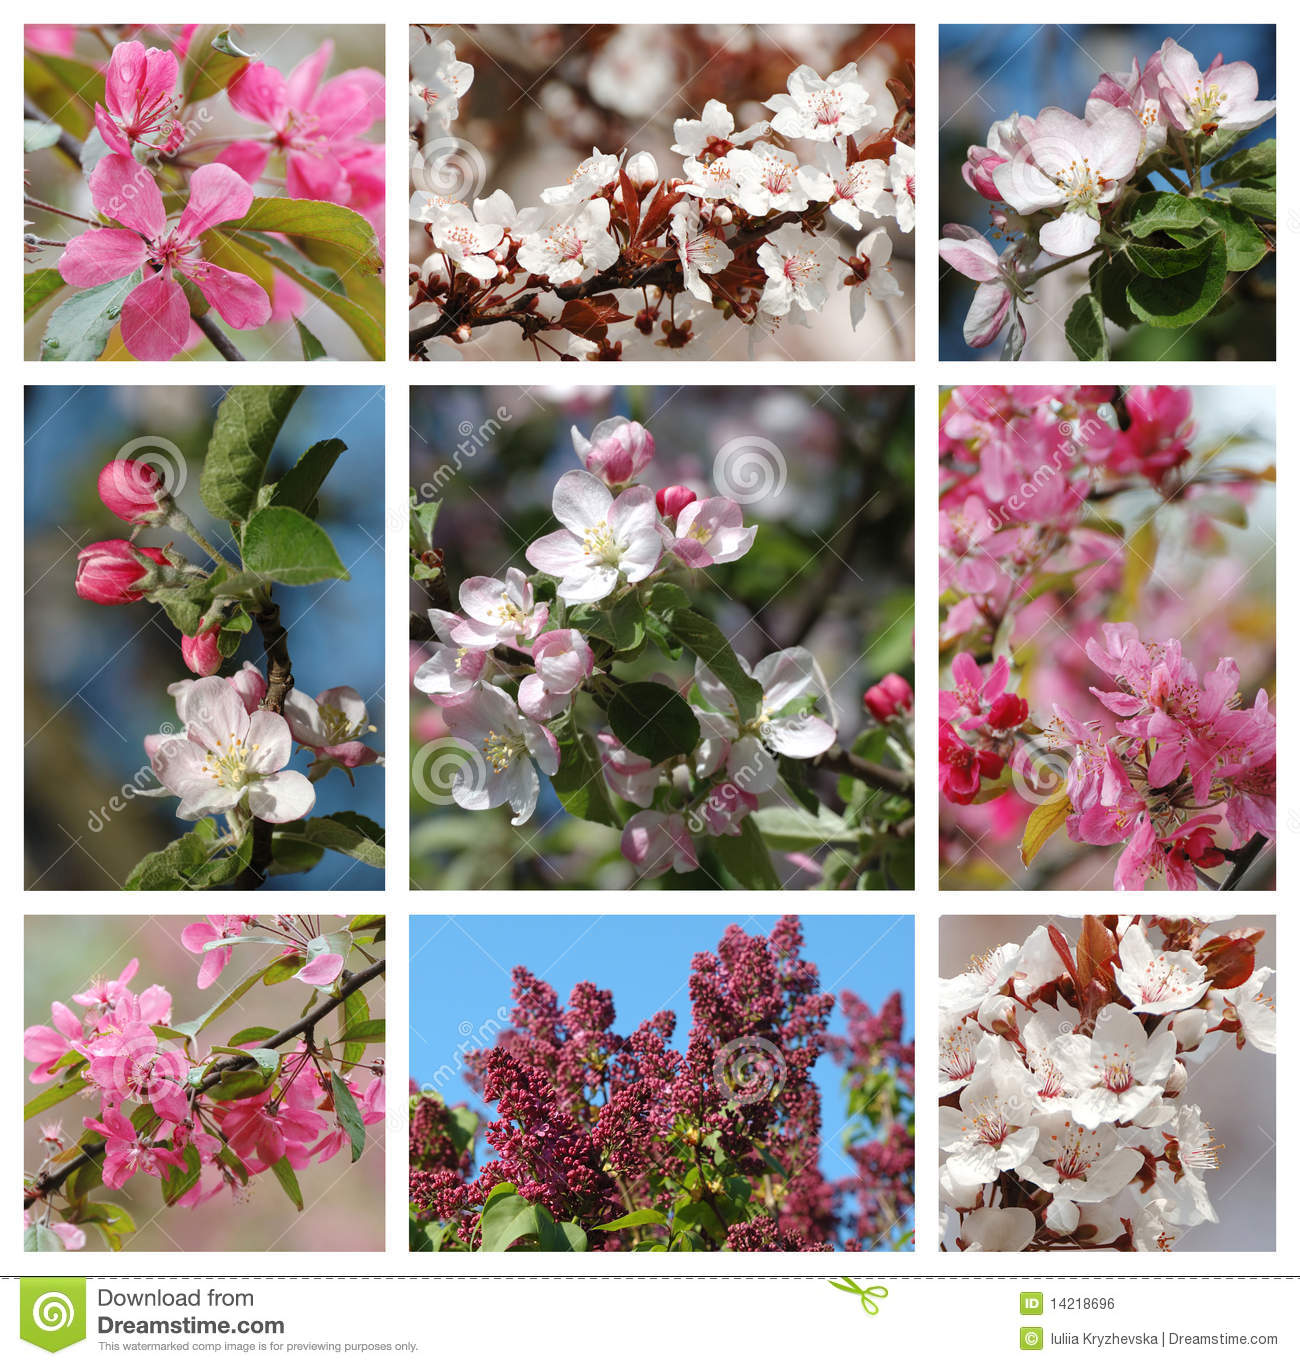 Collage Frame Calendar Amazon Collage Calendar Prime Eligible Spring Season Nature Collage With Flowers Stock Photo